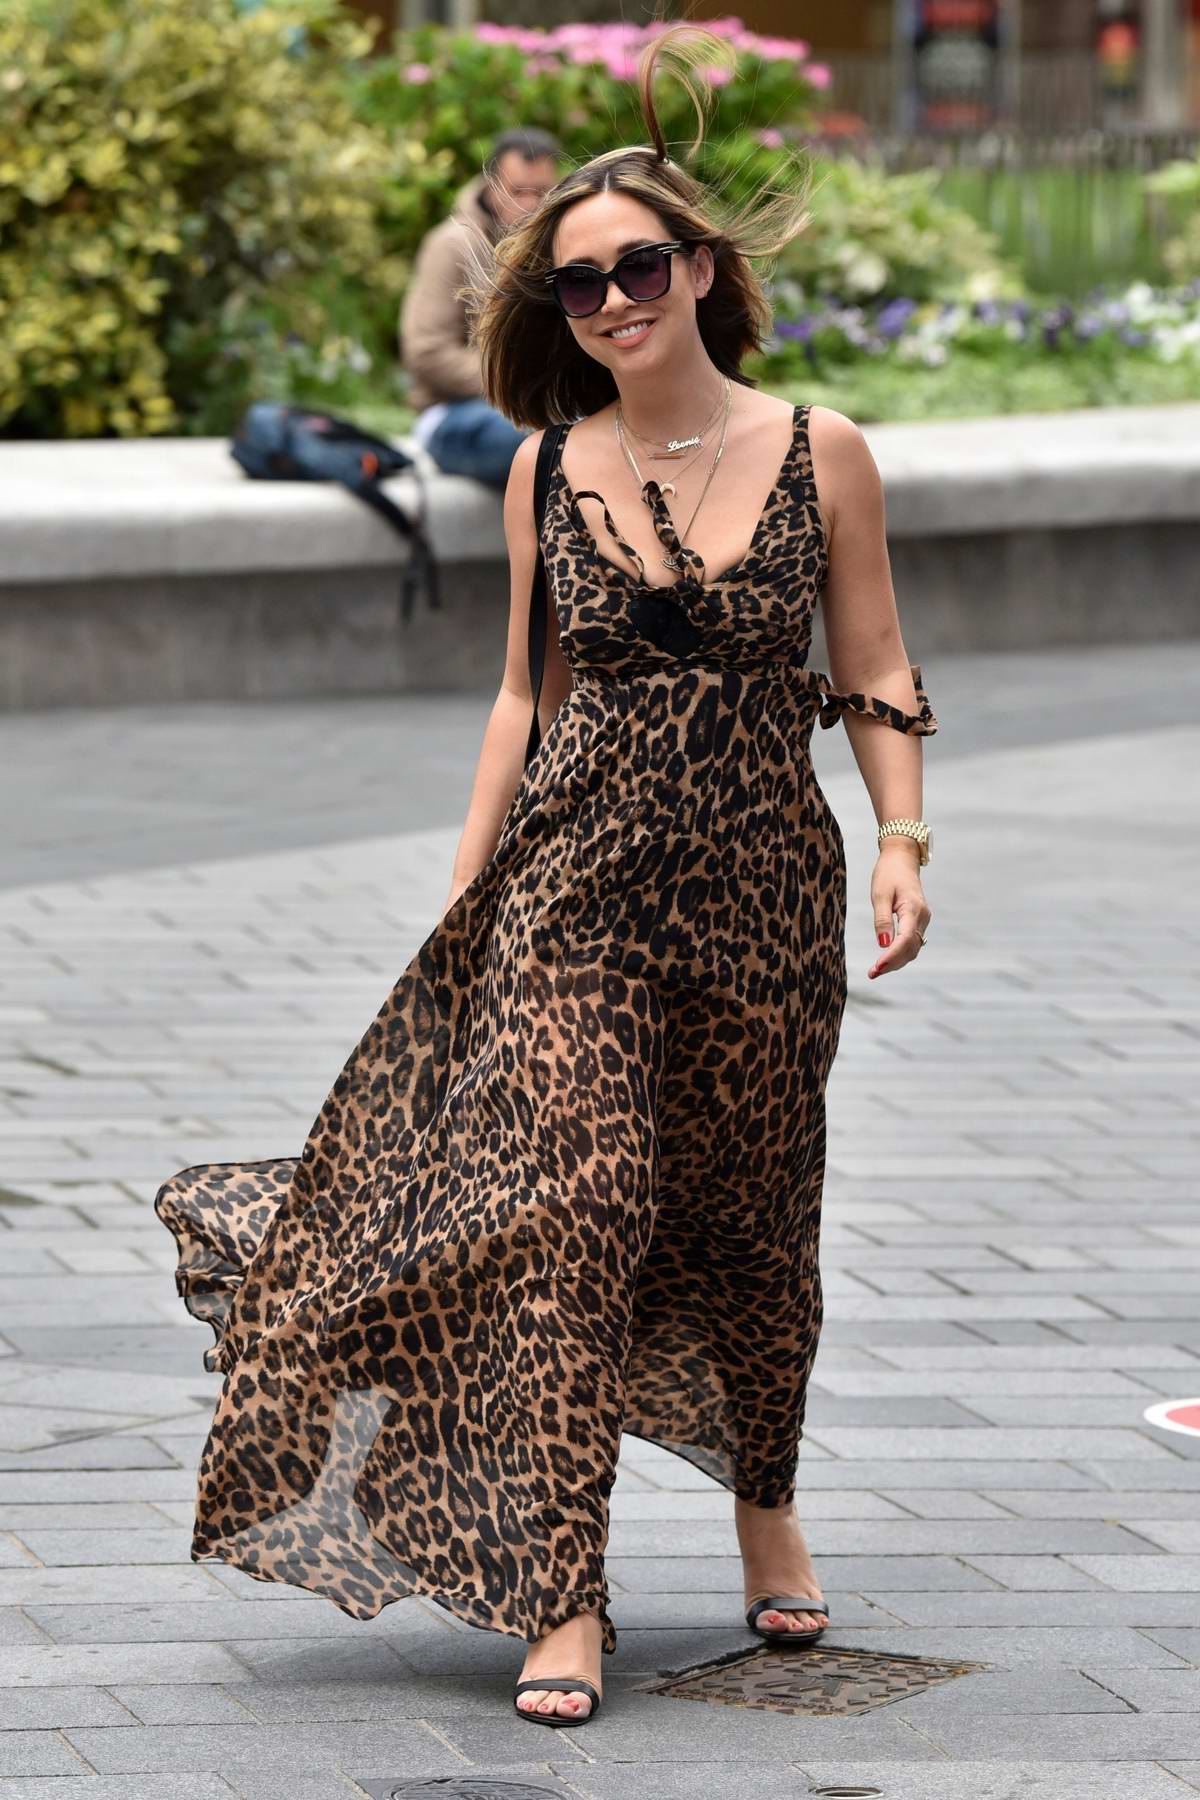 Myleene Klass shows off her new blonde hair with plunging leopard print dress as she arrives at Smooth Radio in London, UK